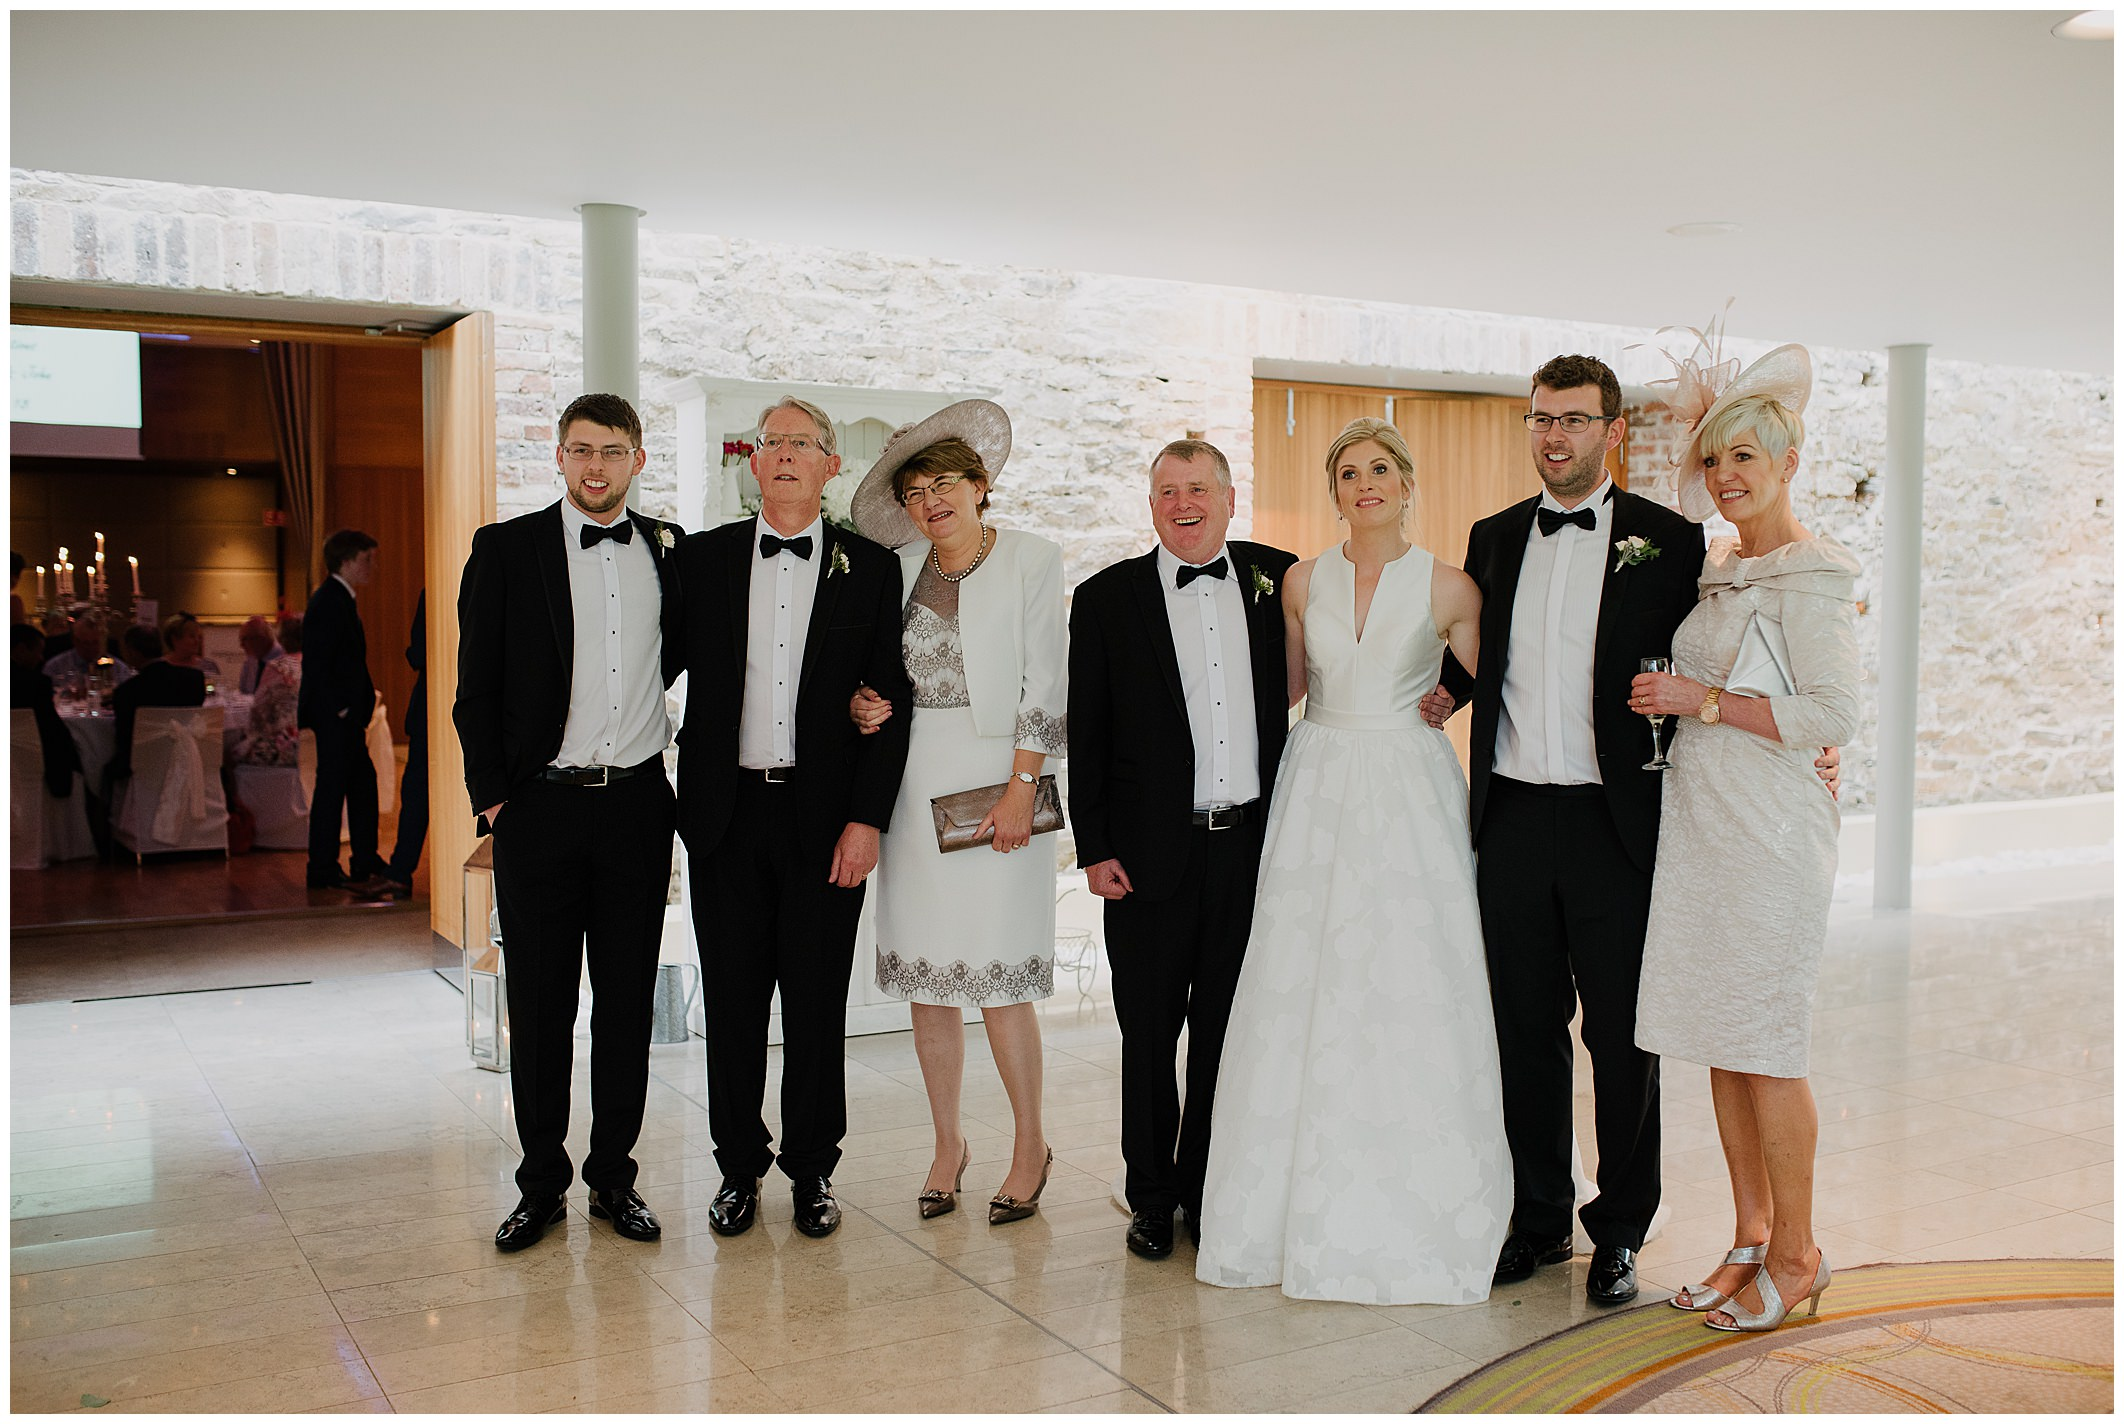 farnham-estate-wedding-jude-browne-photography_0164.jpg